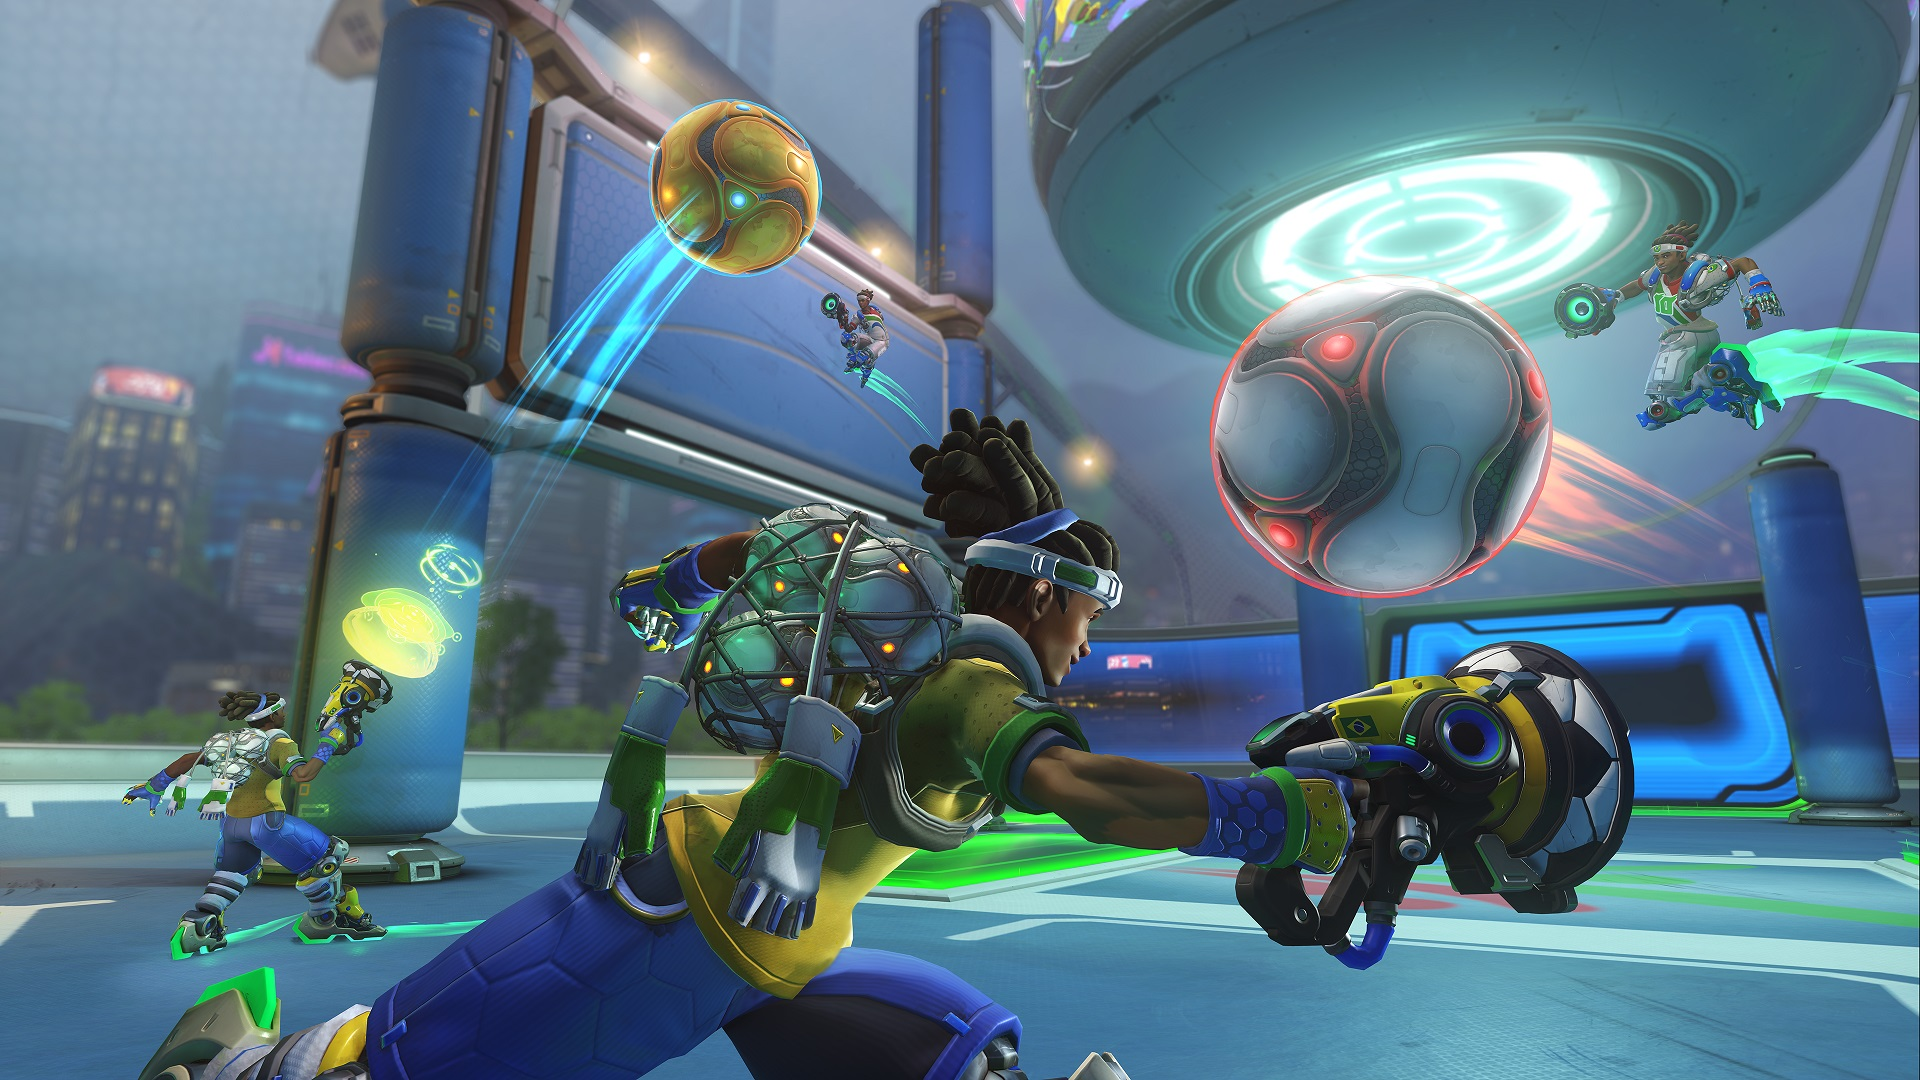 Overwatch Summer Games 2020 begins today with Lucioball